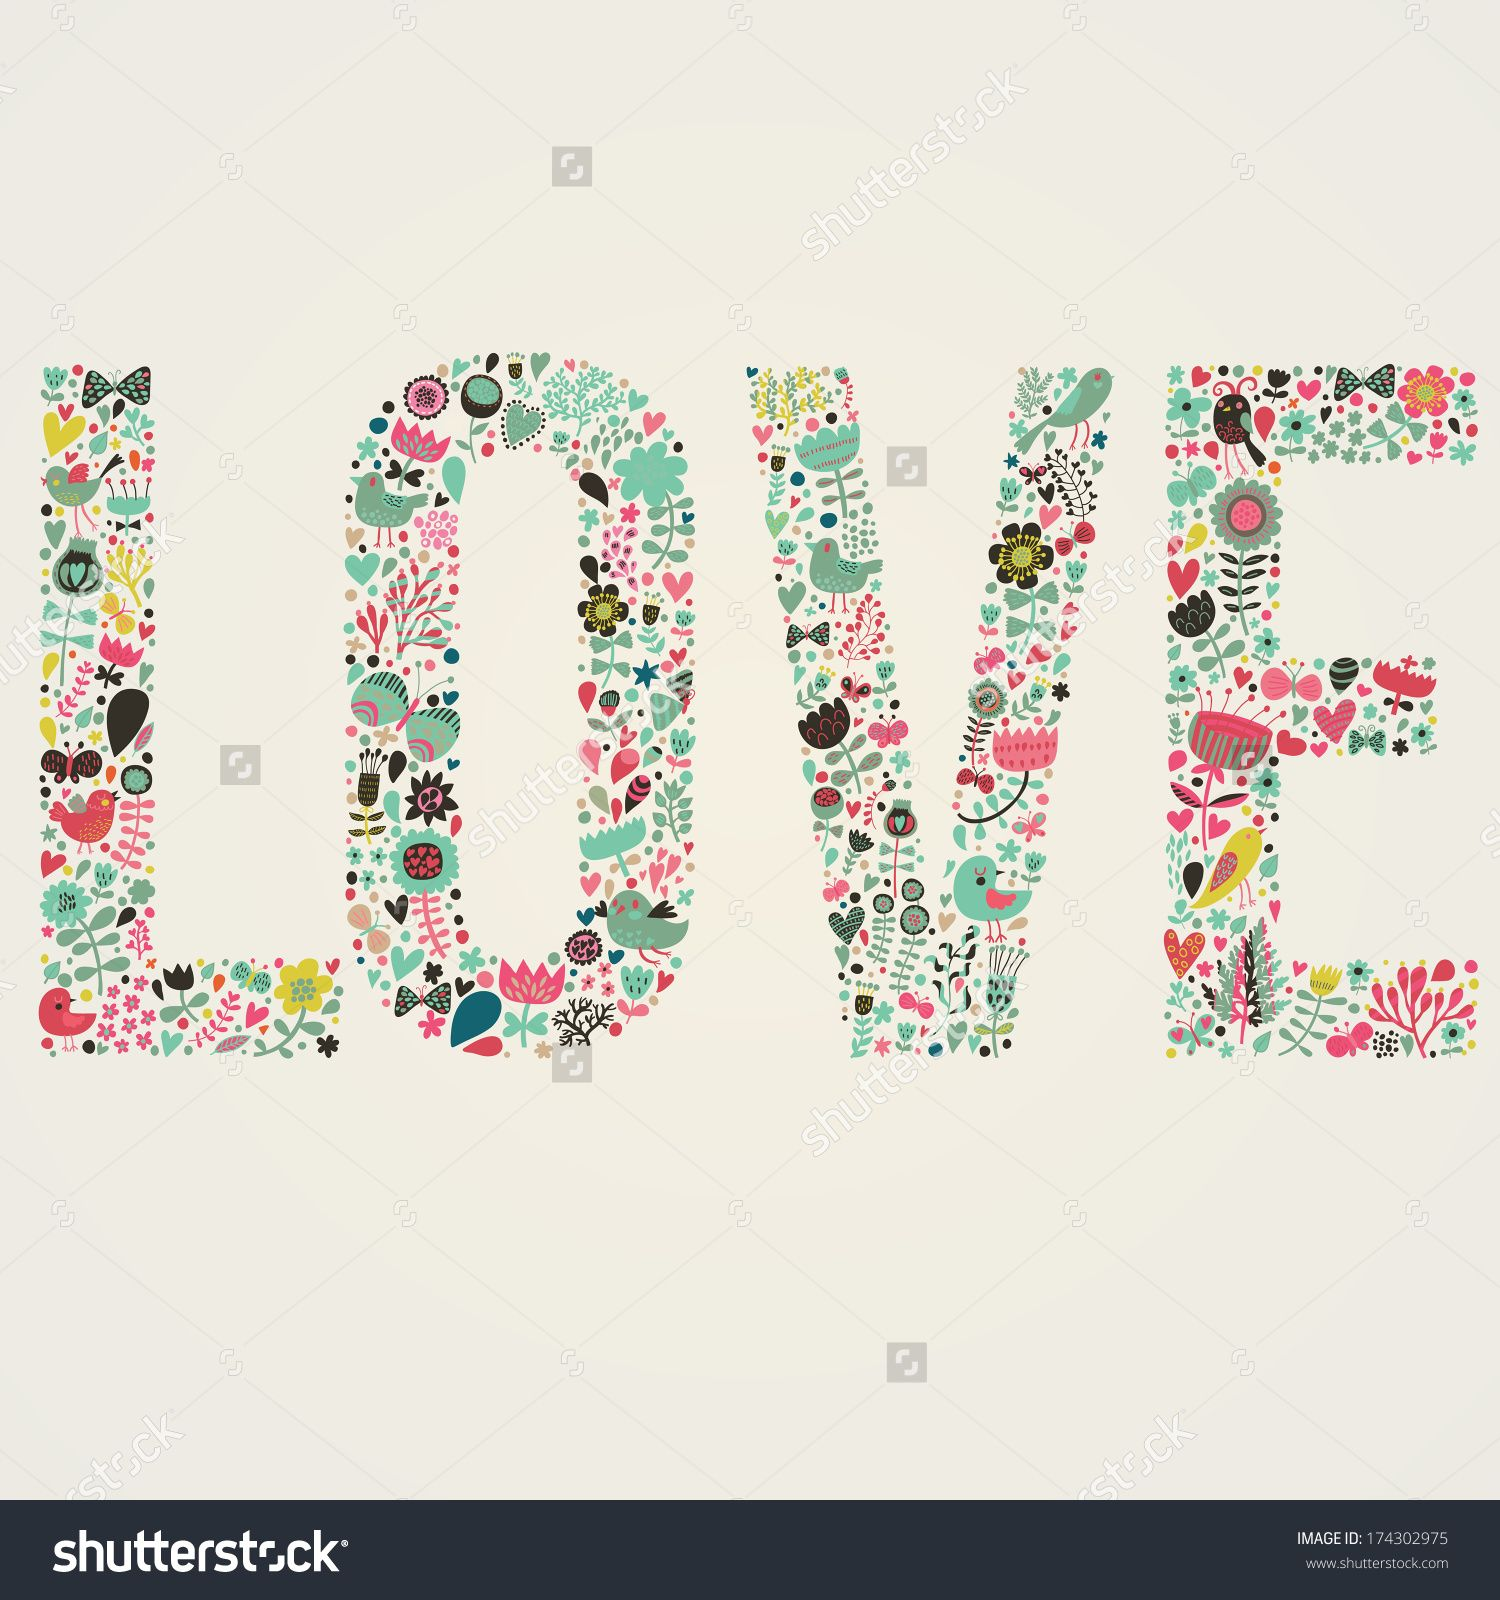 Stylish floral card Love word made of flowers birds and leafs